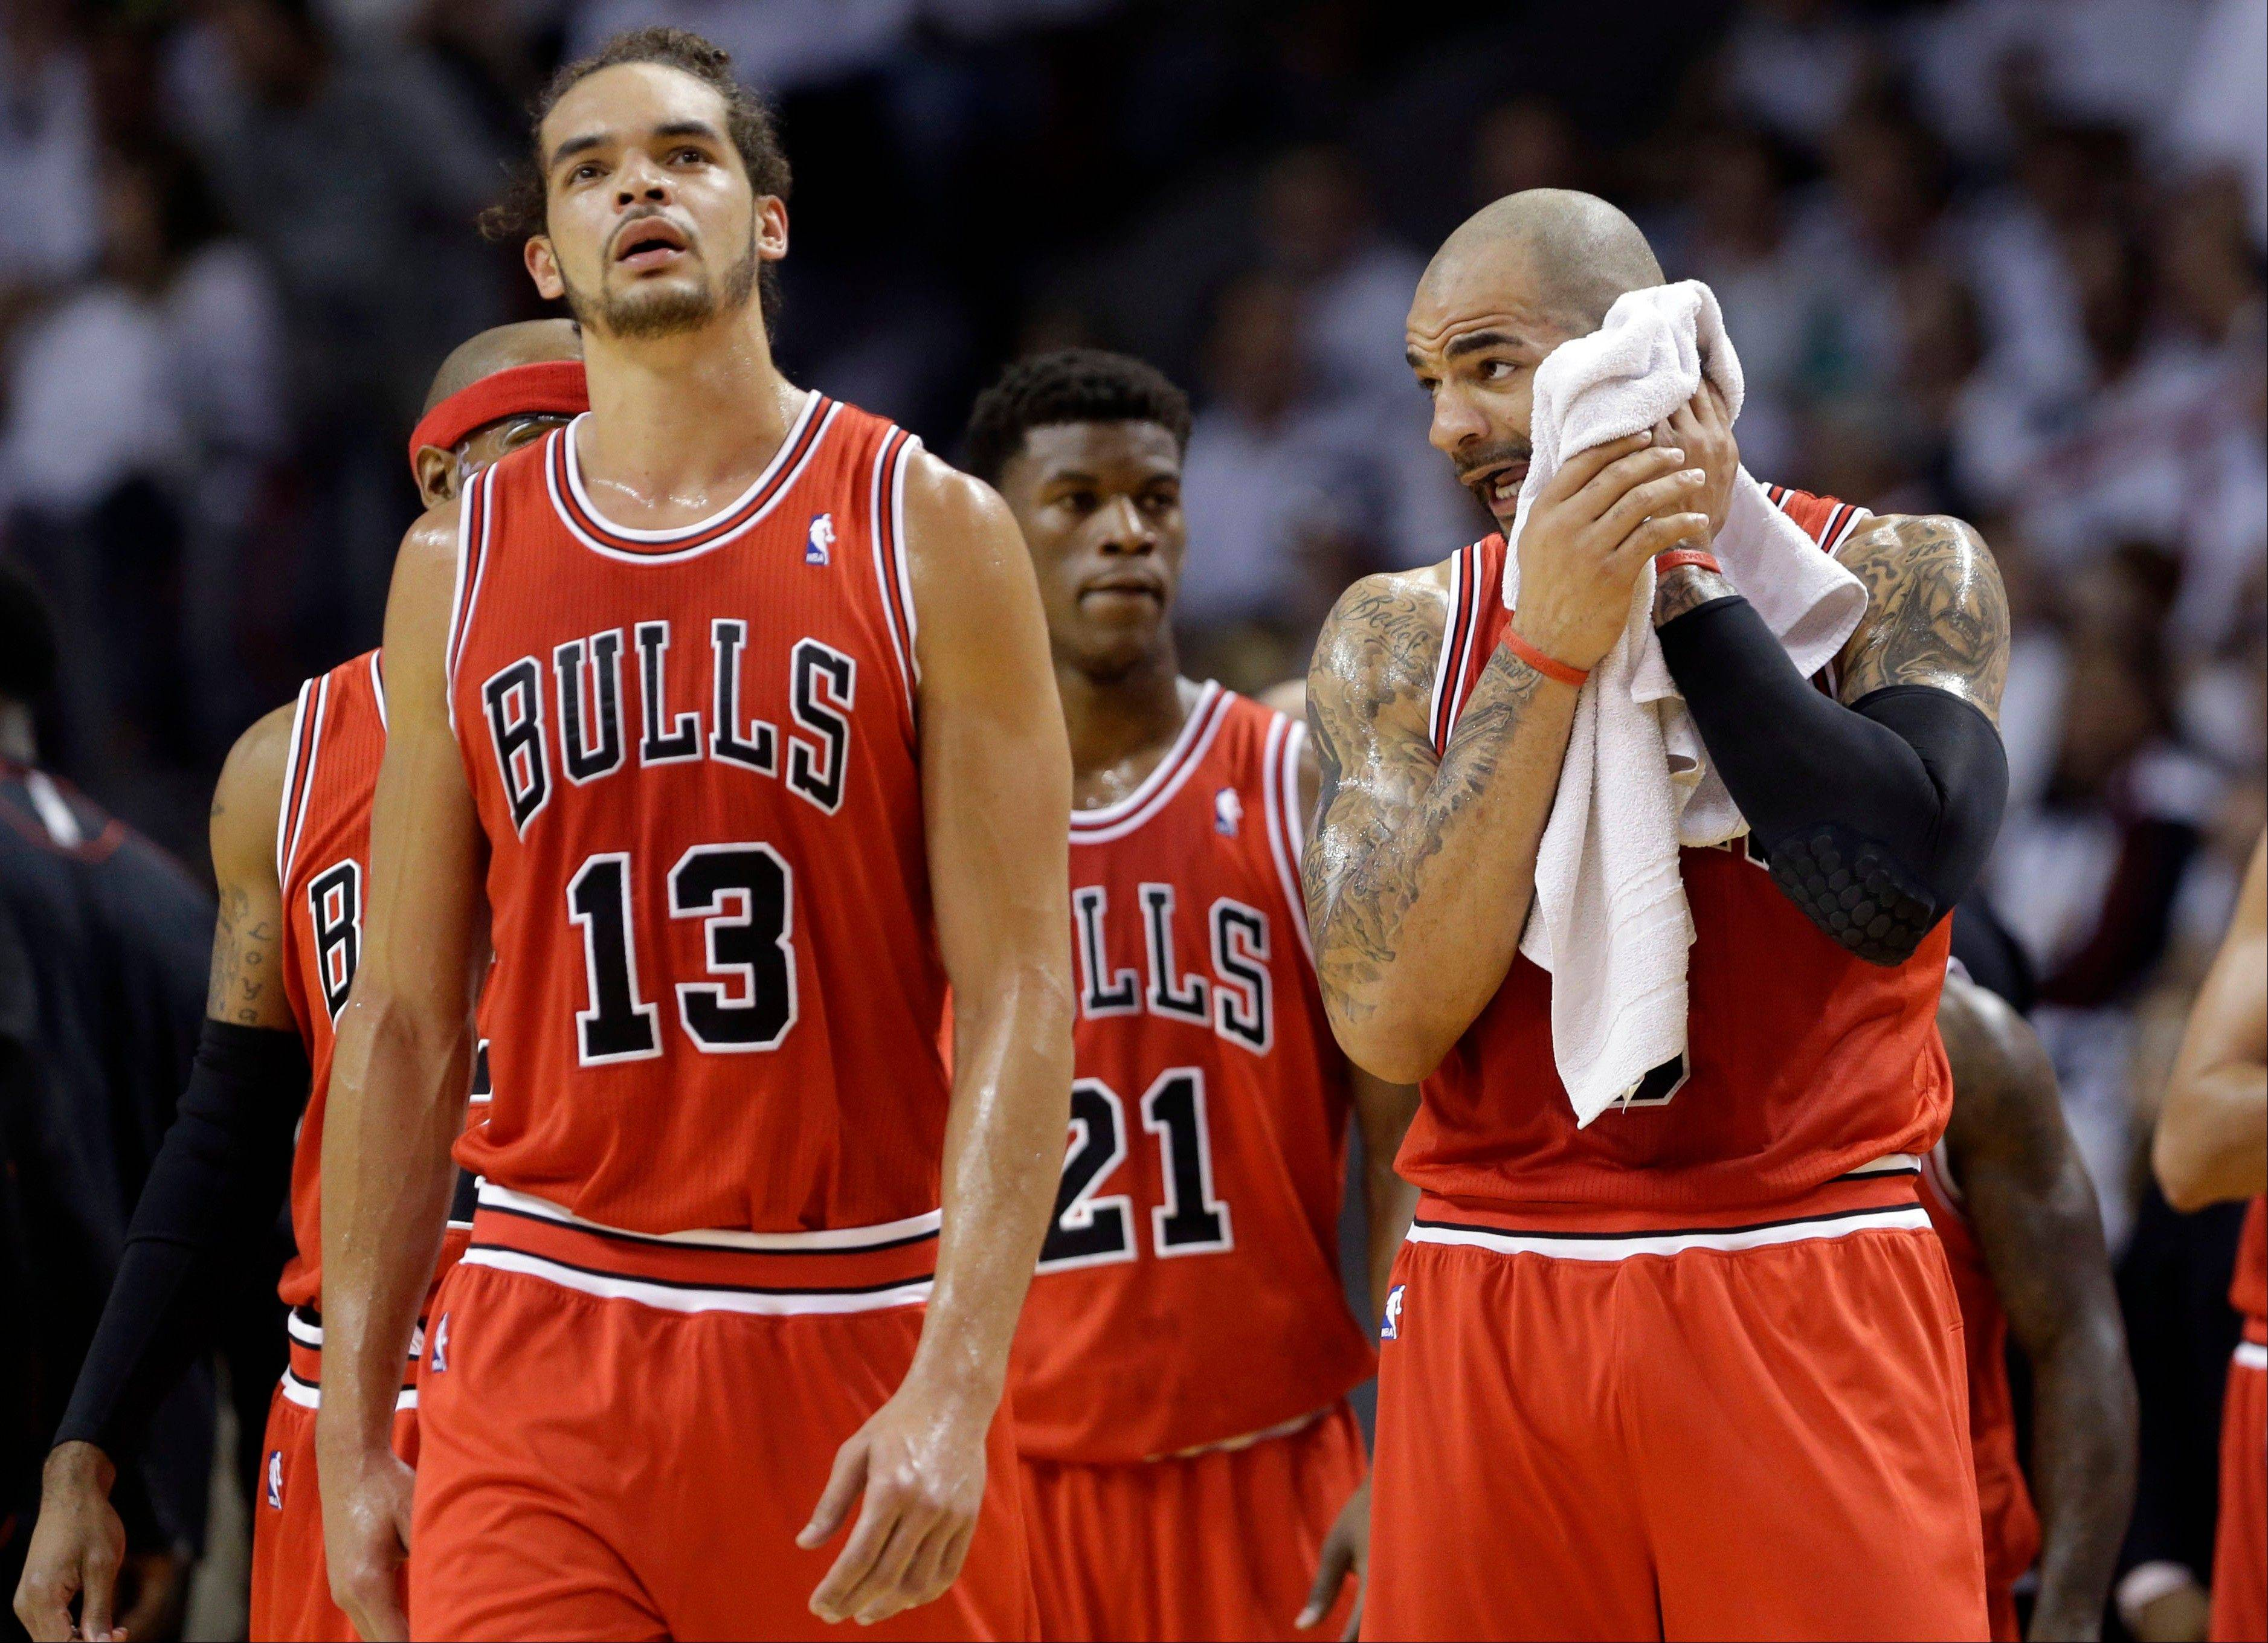 Chicago Bulls' Carlos Boozer wipes his face as he stands with Joakim Noah (13) during a time out in the first half against the Miami Heat in Game 5 of an NBA basketball Eastern Conference semifinal, Wednesday, May 15, 2013, in Miami.